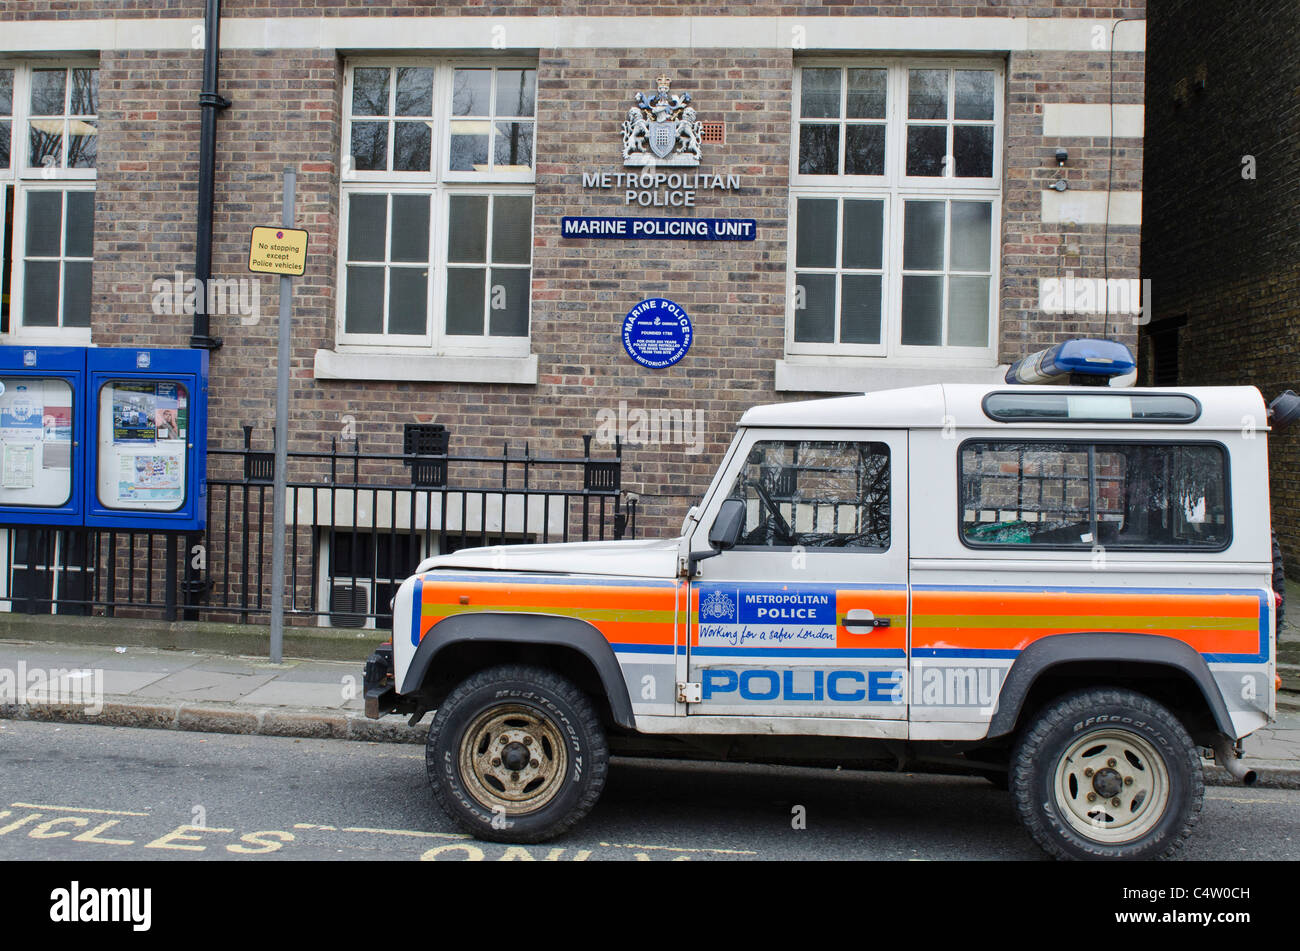 Marine Policing unit with Poiice Landrover Wapping High street London Uk - Stock Image